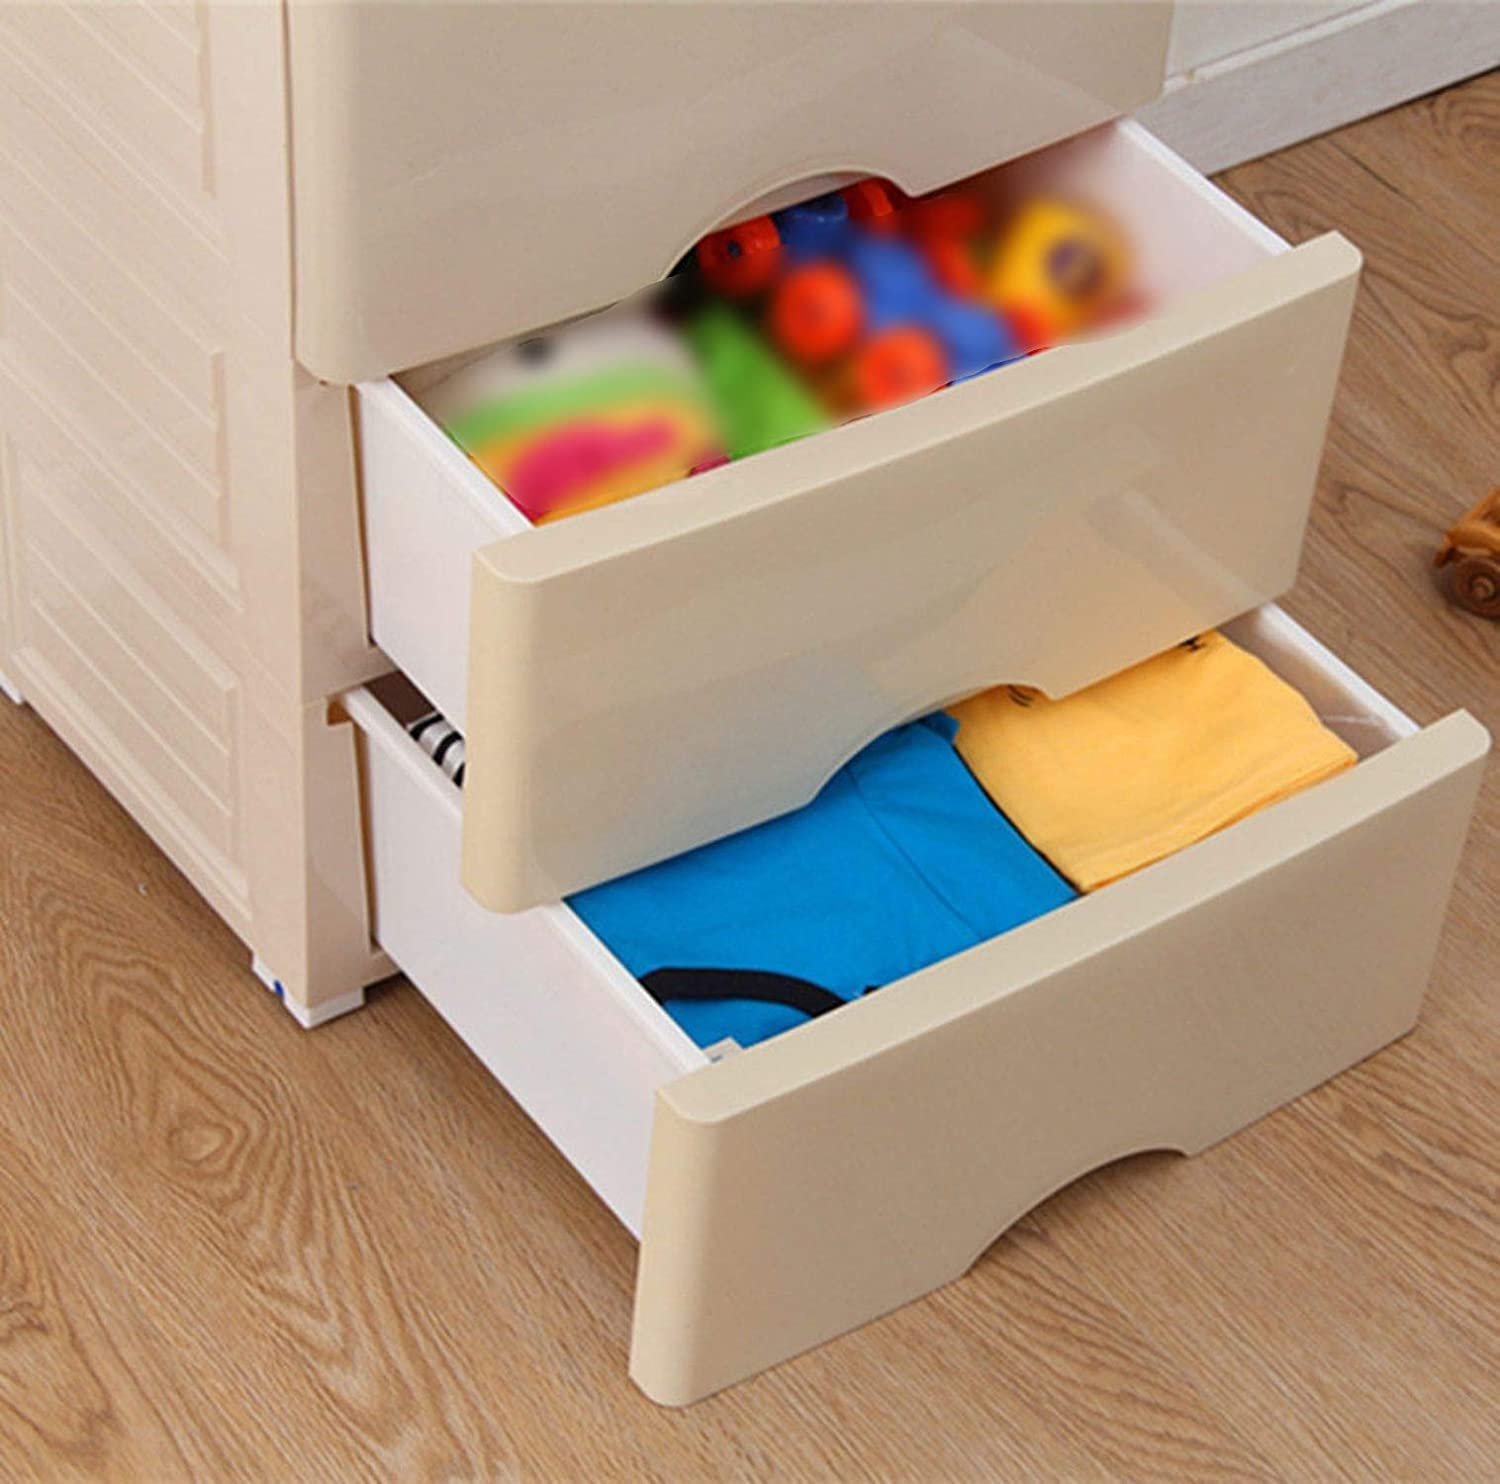 Amazon.com: Plastic Organizer Drawer 5 Layers Drawers for ...